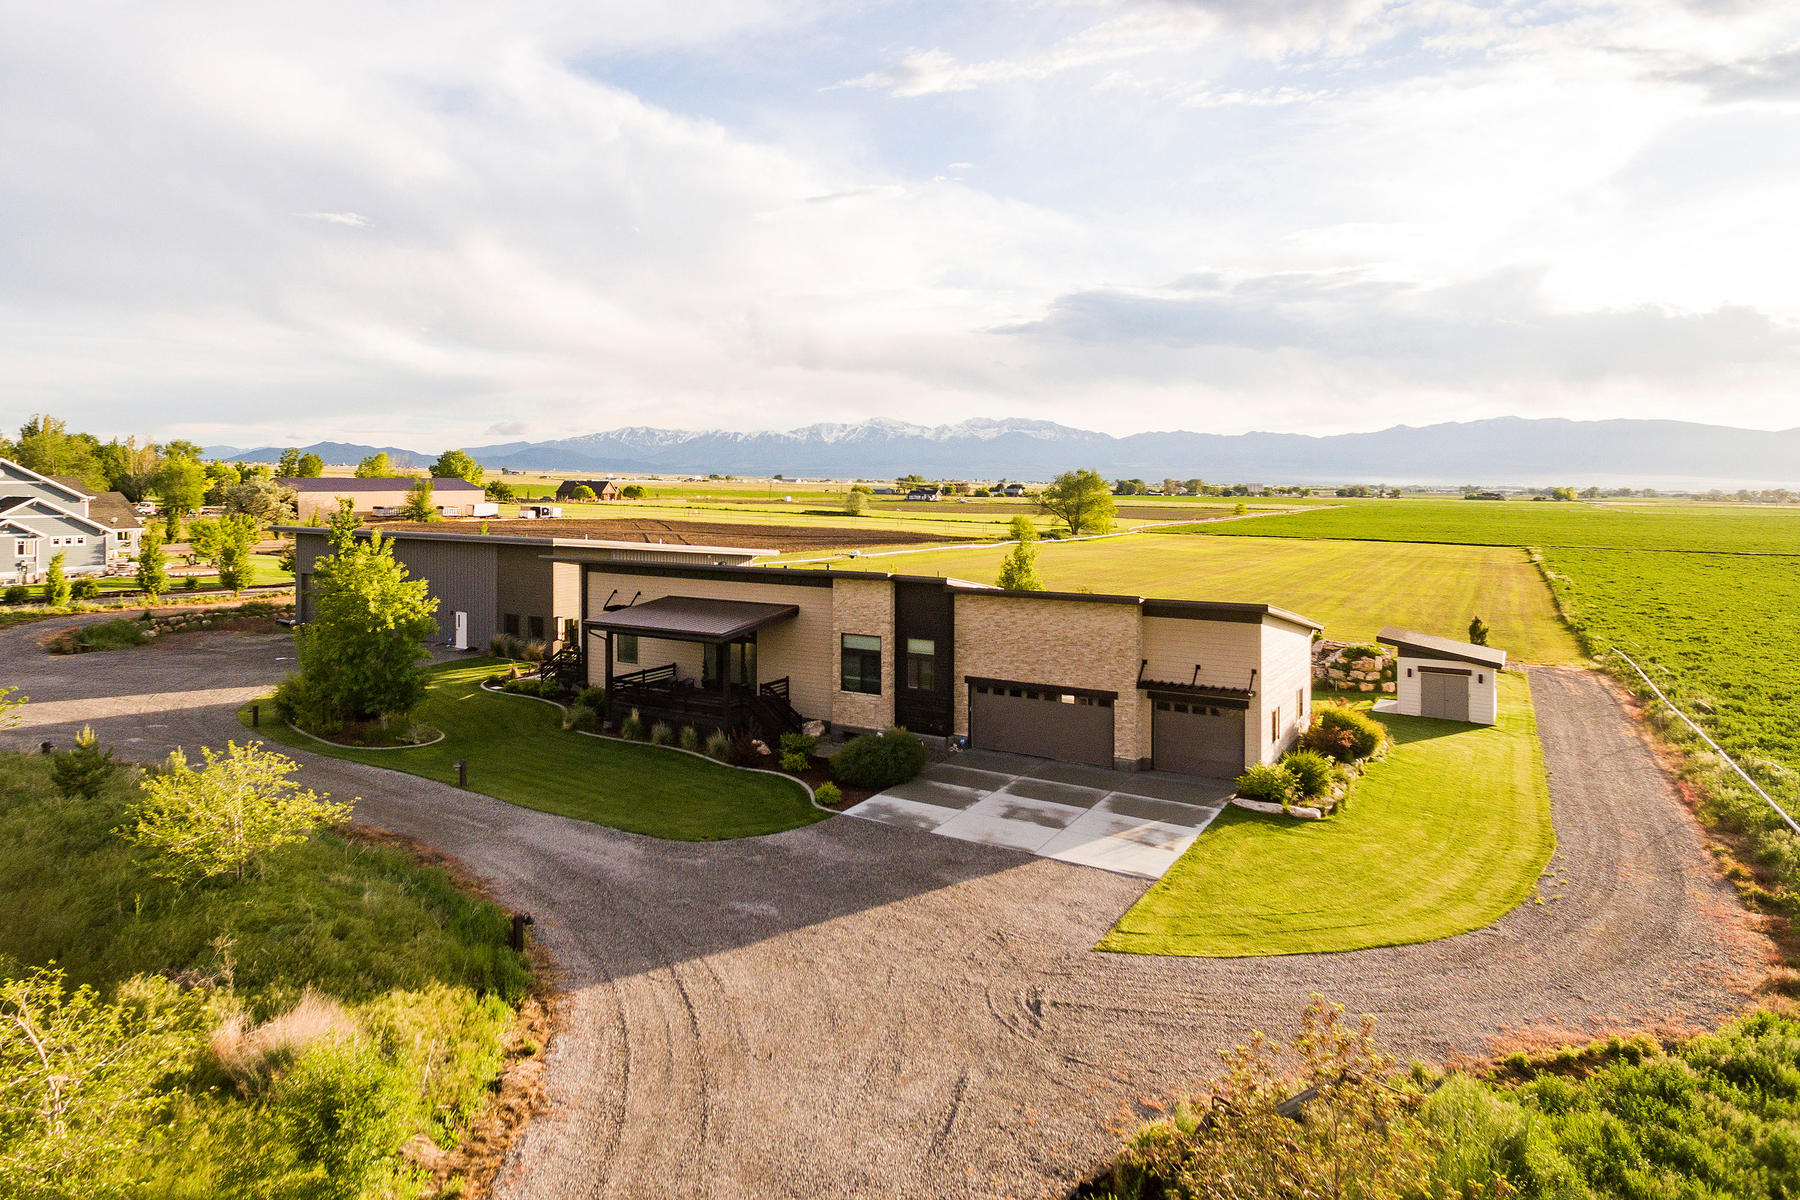 Single Family Homes for Active at Panoramic Views surround This East Erda Home 4157 Droubay Rd Erda, Utah 84074 United States